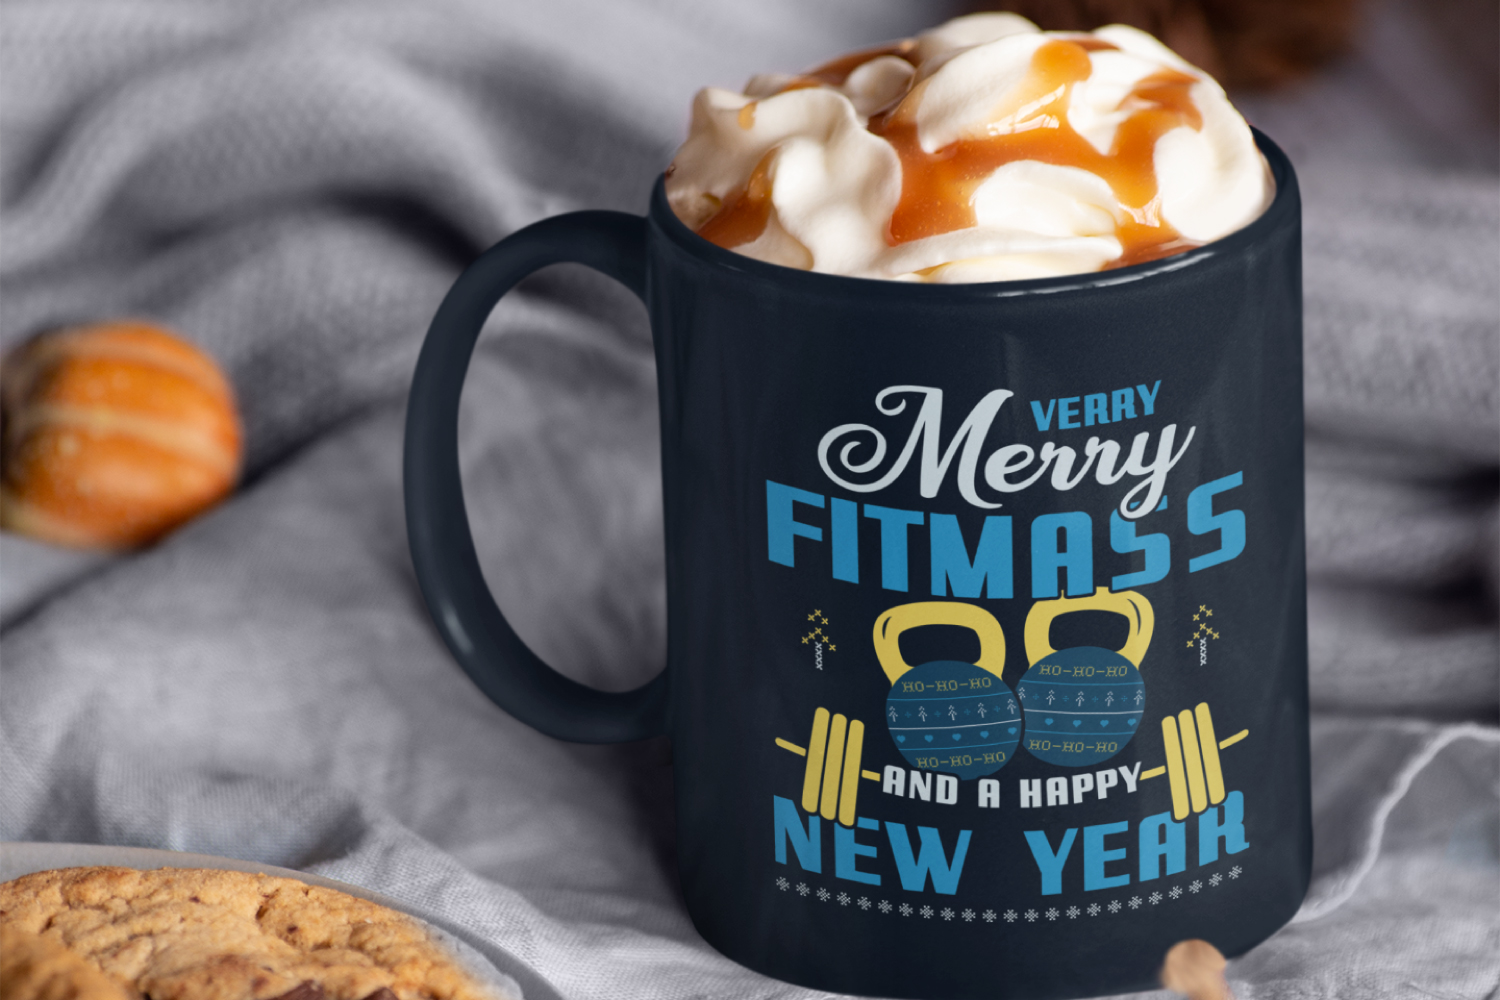 Merry Fitmass, Happy New Year Tshirt, Xmas Design SVG File example image 7